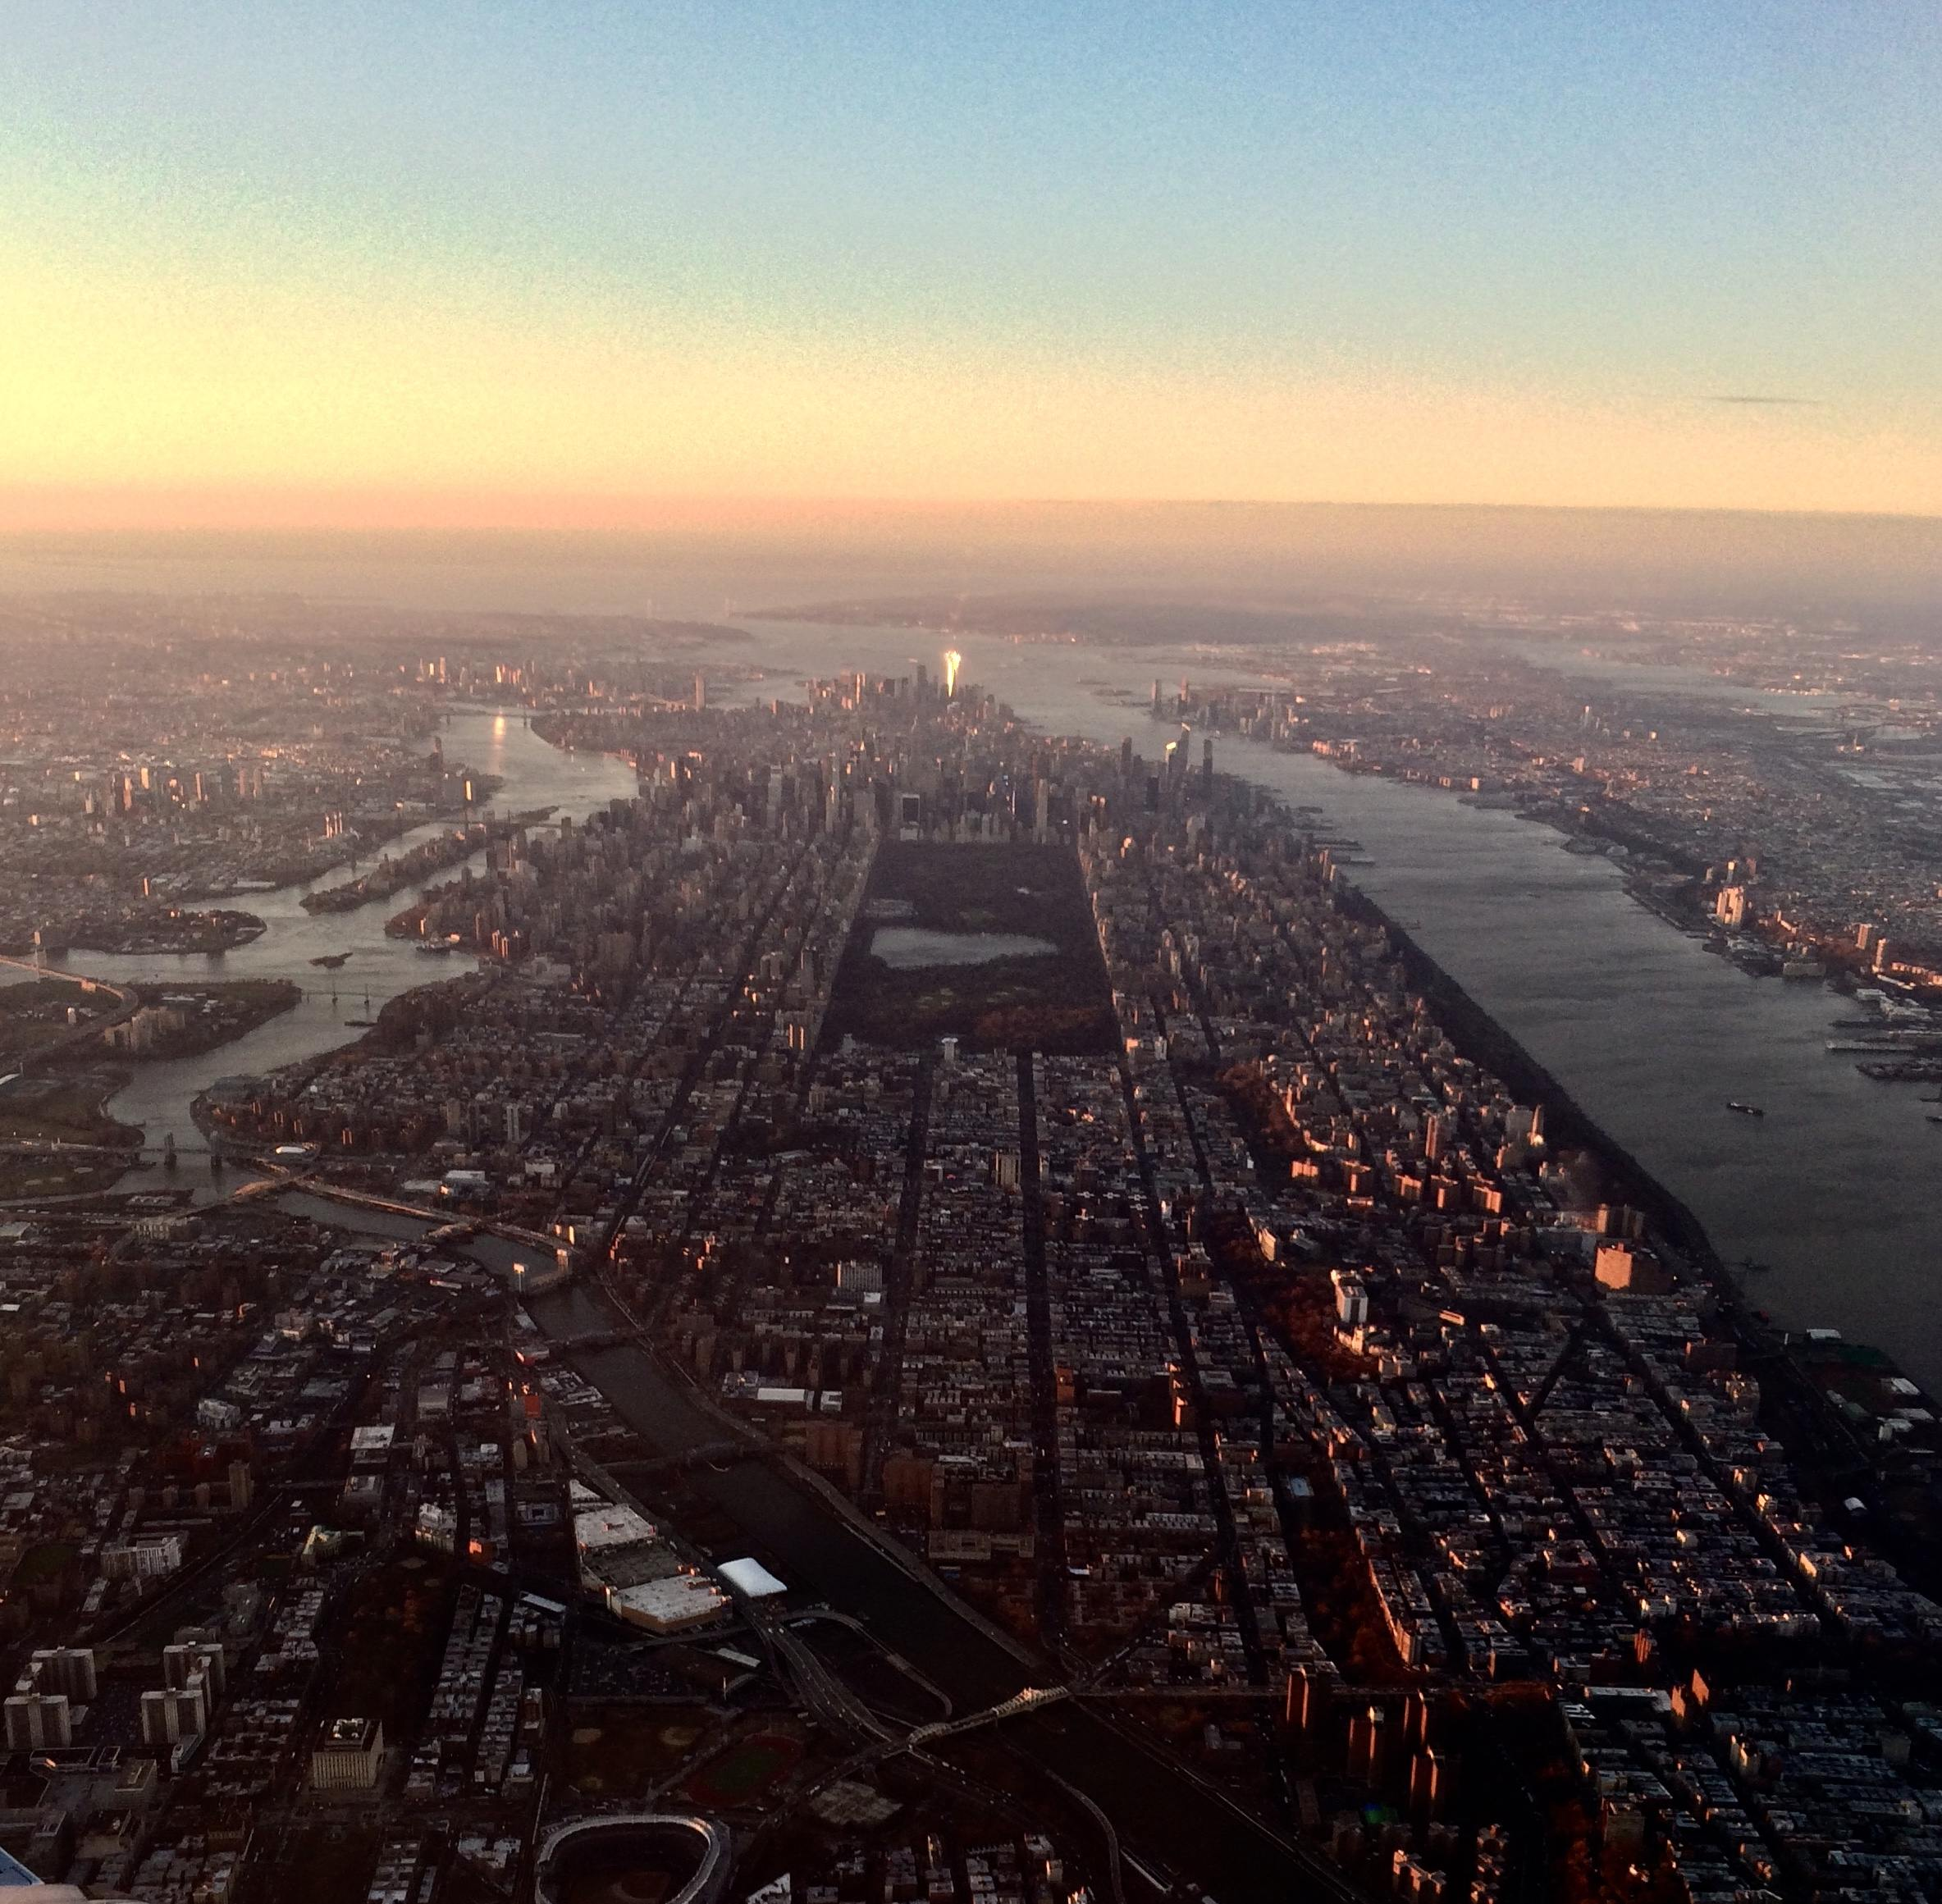 NYC from an airplane leaving LaGuardia Airport. This was the view I had when it was time for me to move to the city.